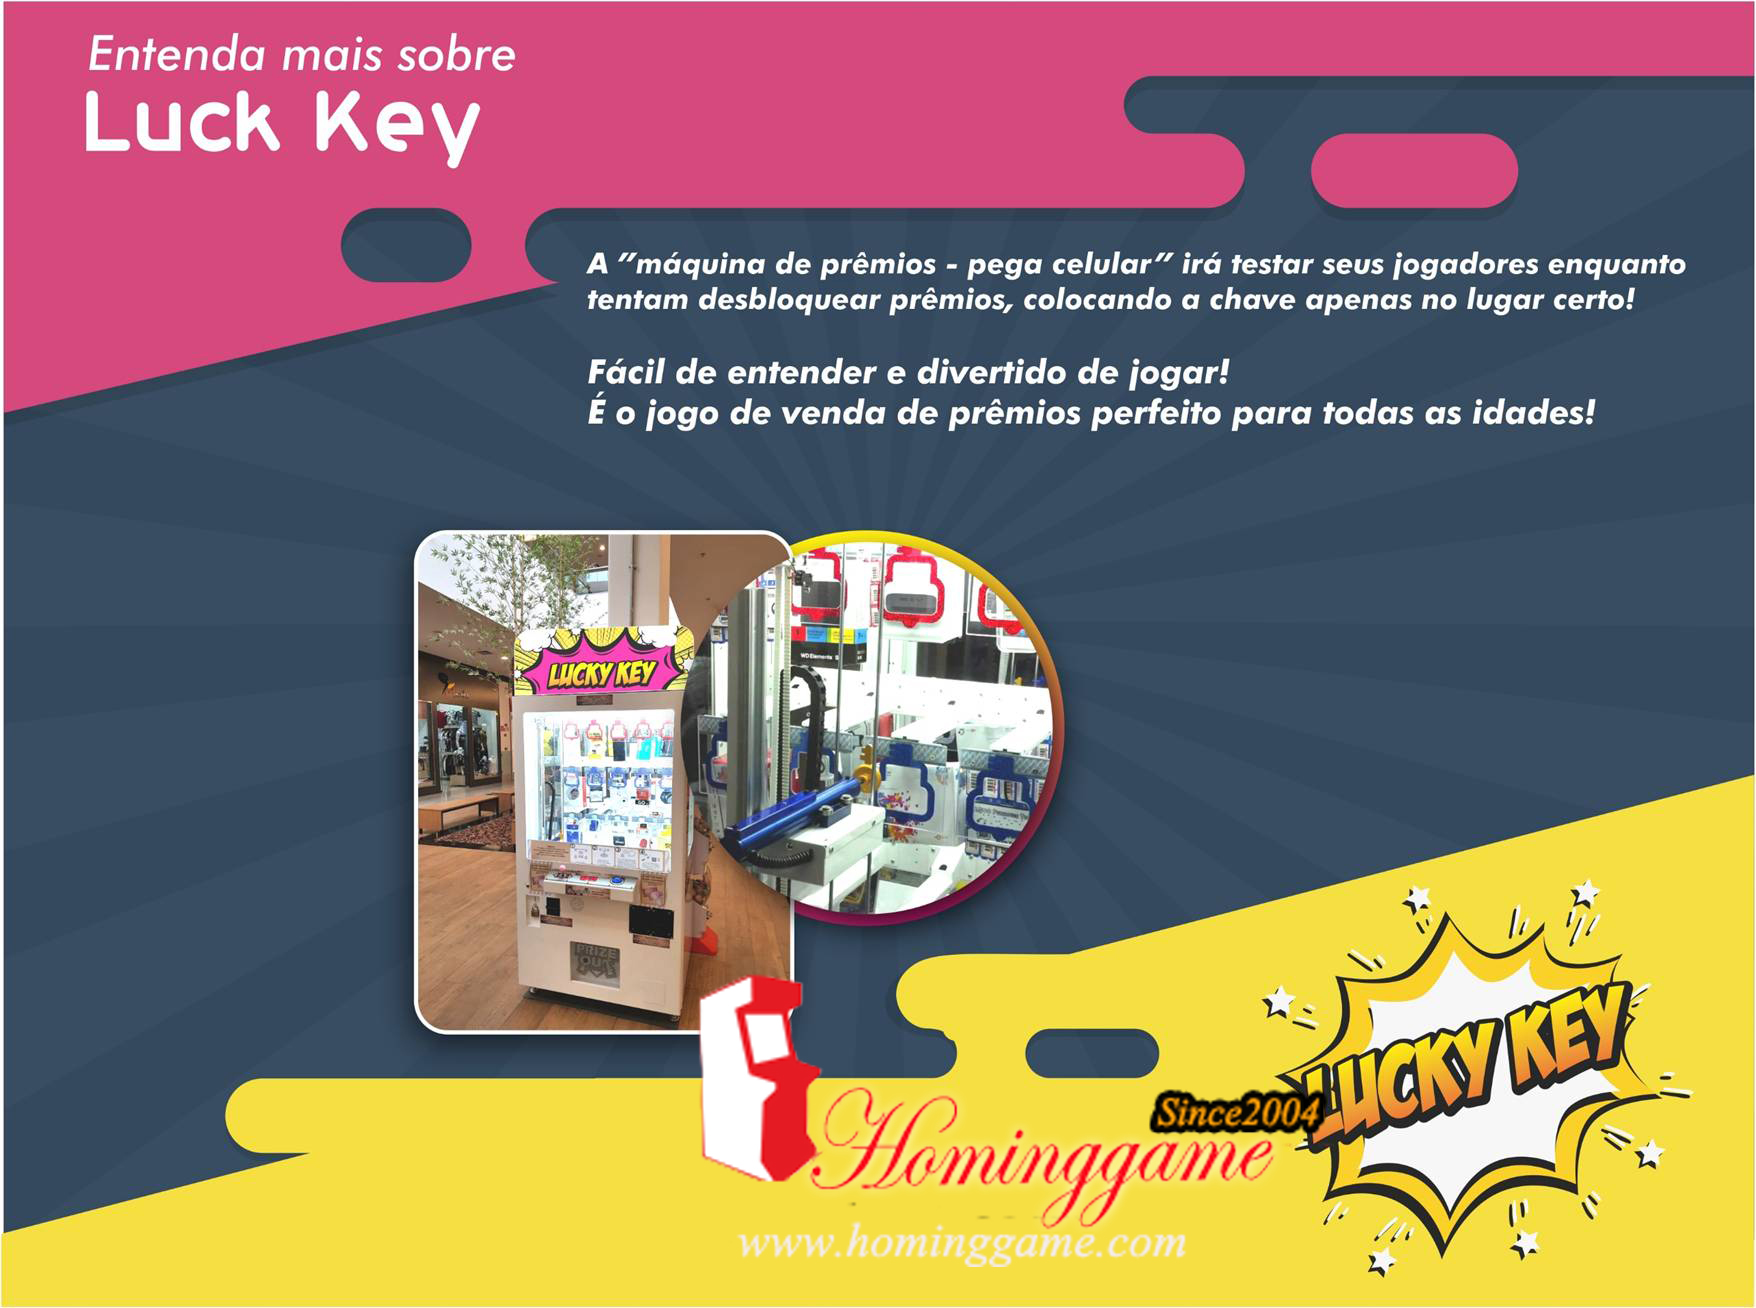 2018 HomingGame New Lucky Key Premios Equipamento Vending Machine For Brasil,Lucky Key,Lucky Key Master,Lucky Key Master Prize Game Machine,Key Master Prize Game Machine,Key Master,Key Master Arcade Game Machine,Key Master Arcade Game Machine,Premios Equipamento,Vending Machine,Prize Vending Machine,Vending Game Machine,Gift Game Machine,Game Machine,Arcade Game Machine,Coin Operated Game Machine,Arcade Games,Amusement Park Game Equipment,Indoor Game Machine,Entertainment Game,Family Entertainment